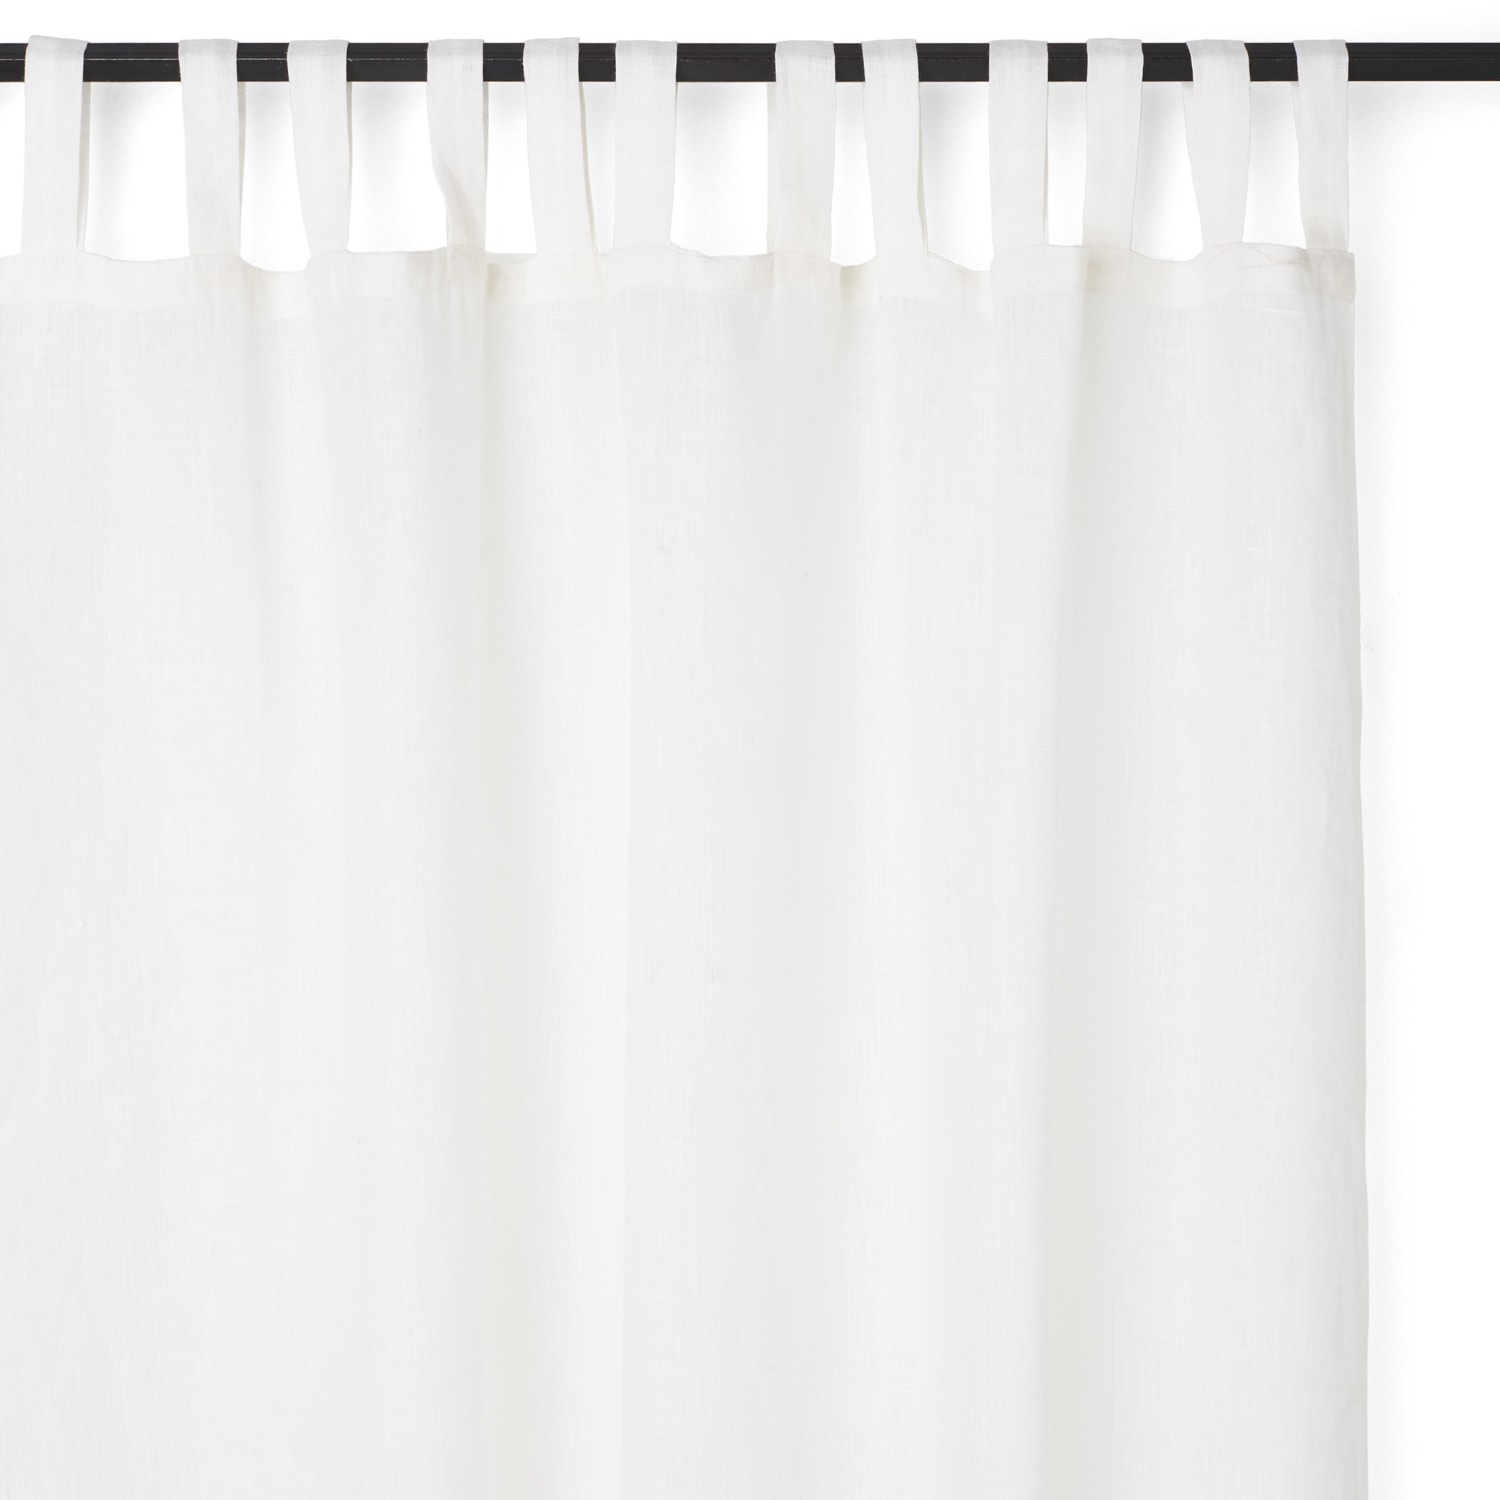 Curtain Panels Window Treatments At Abc Home Within Plain Linen Curtains (Image 6 of 15)